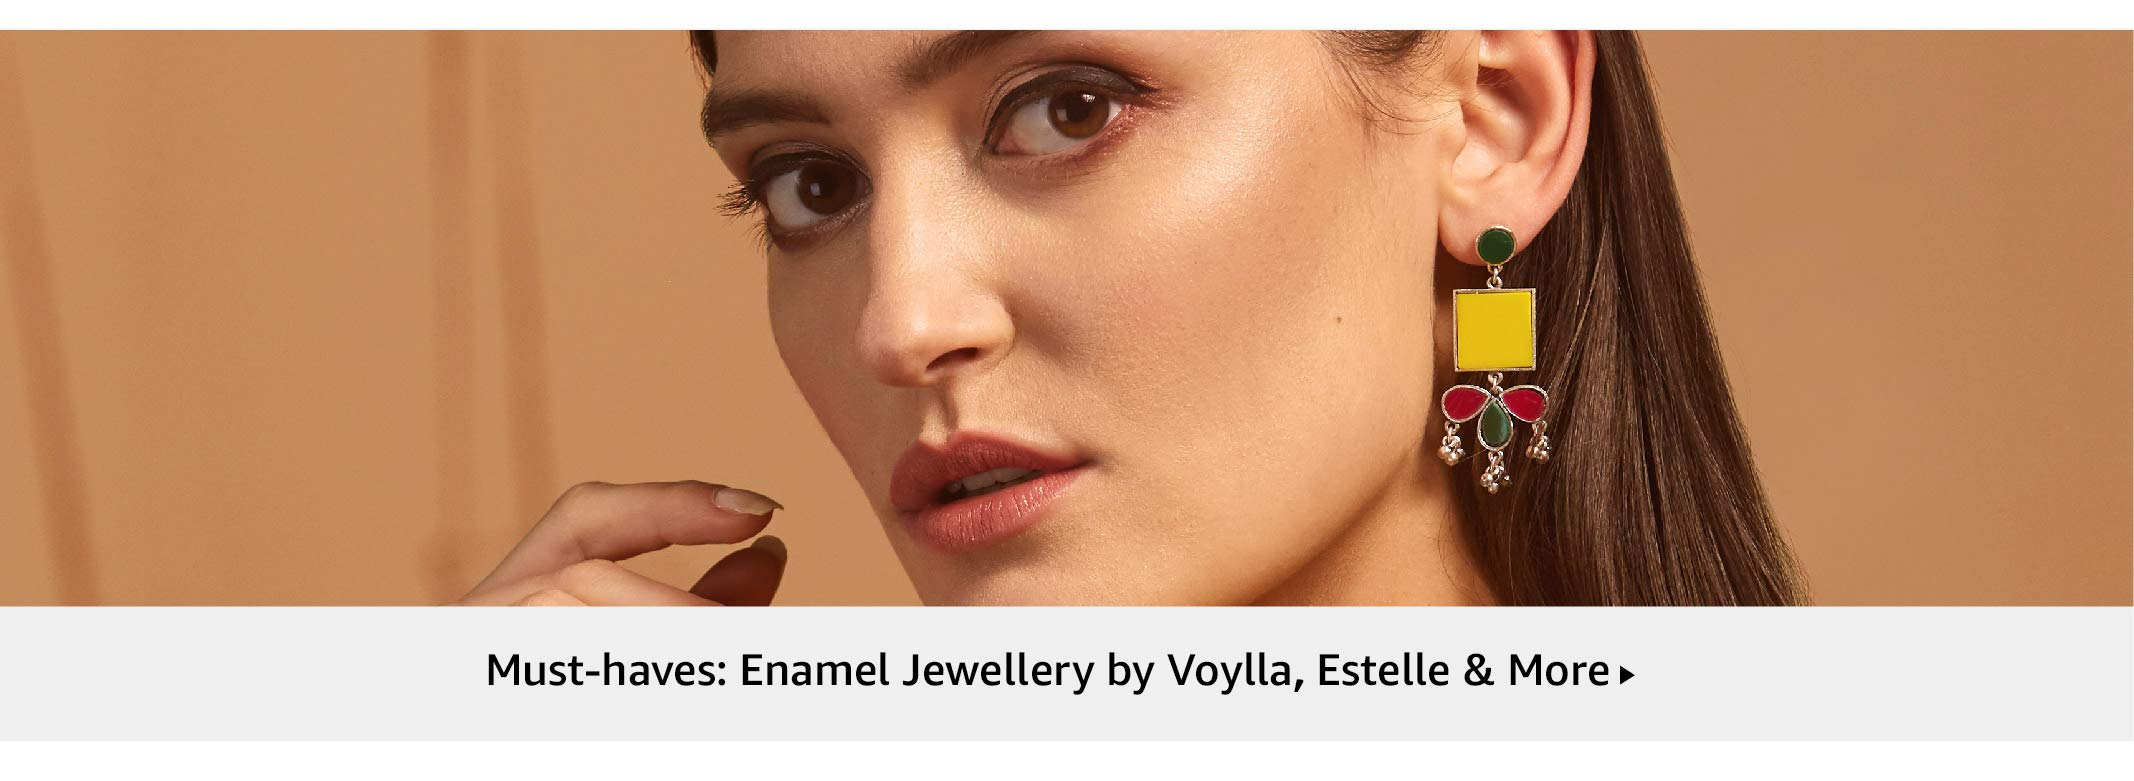 Must-haves: Enamel Jewellery by Voylla, Estelle & More